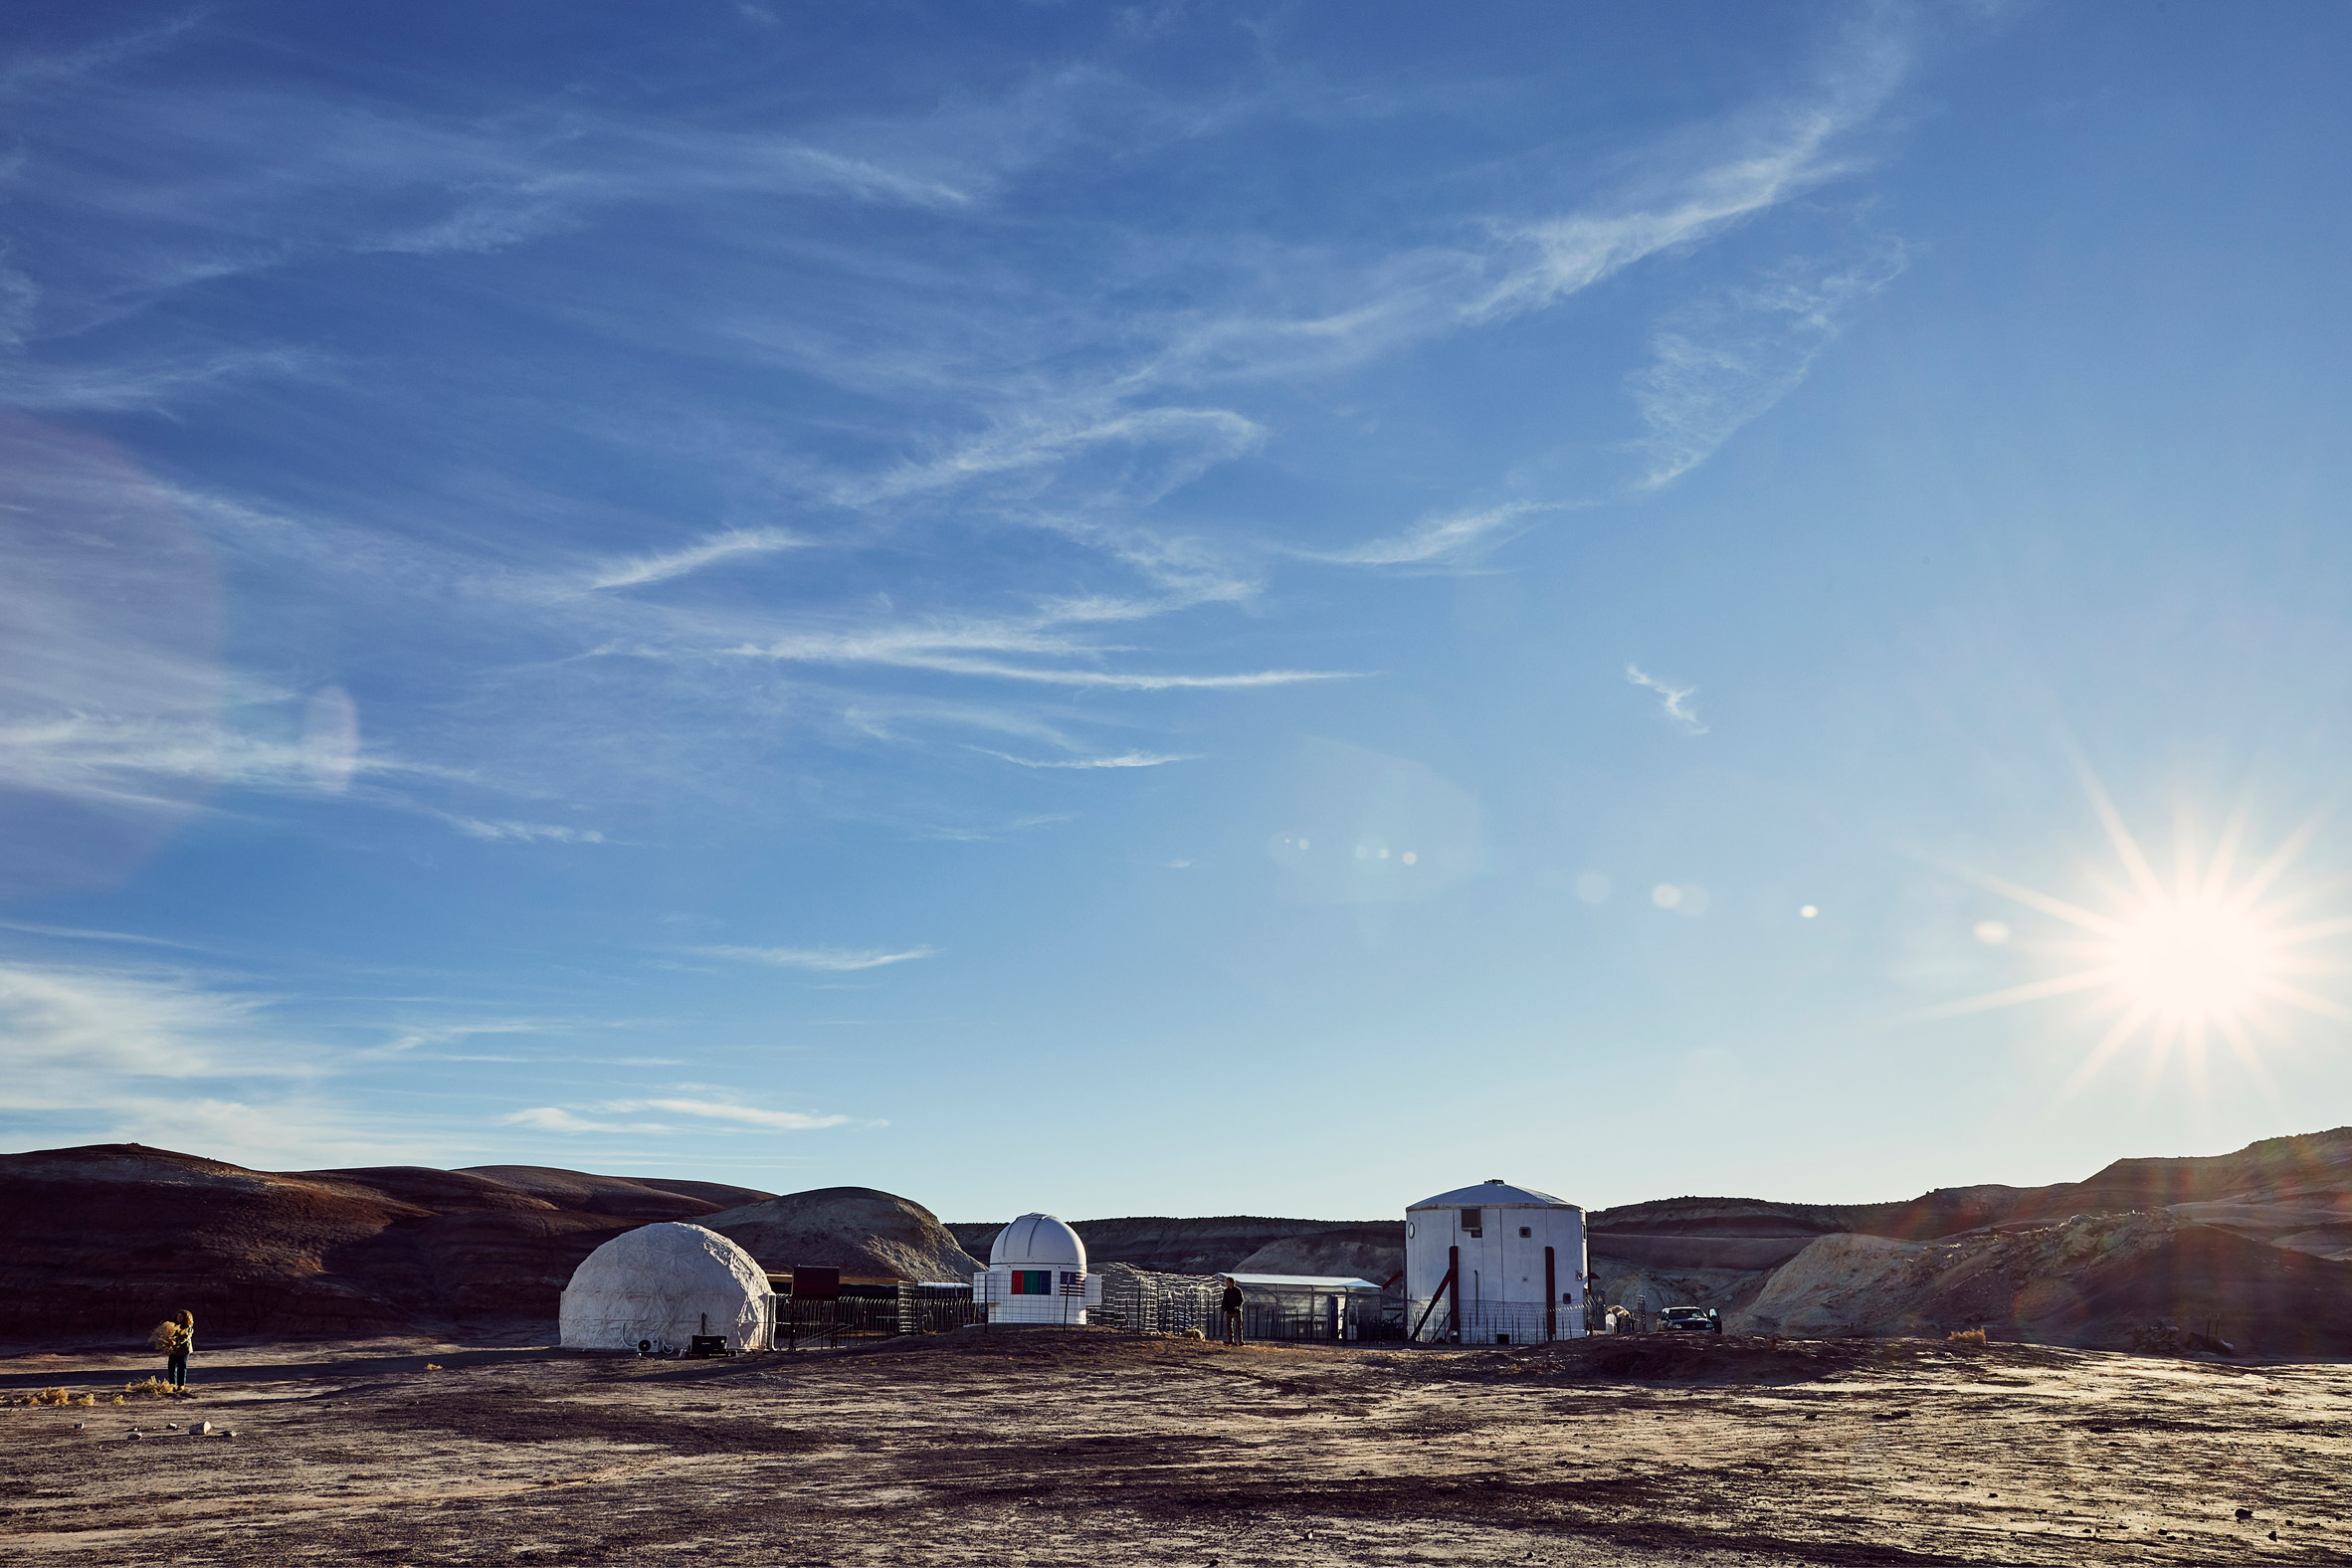 IKEA Mars Desert Research Station